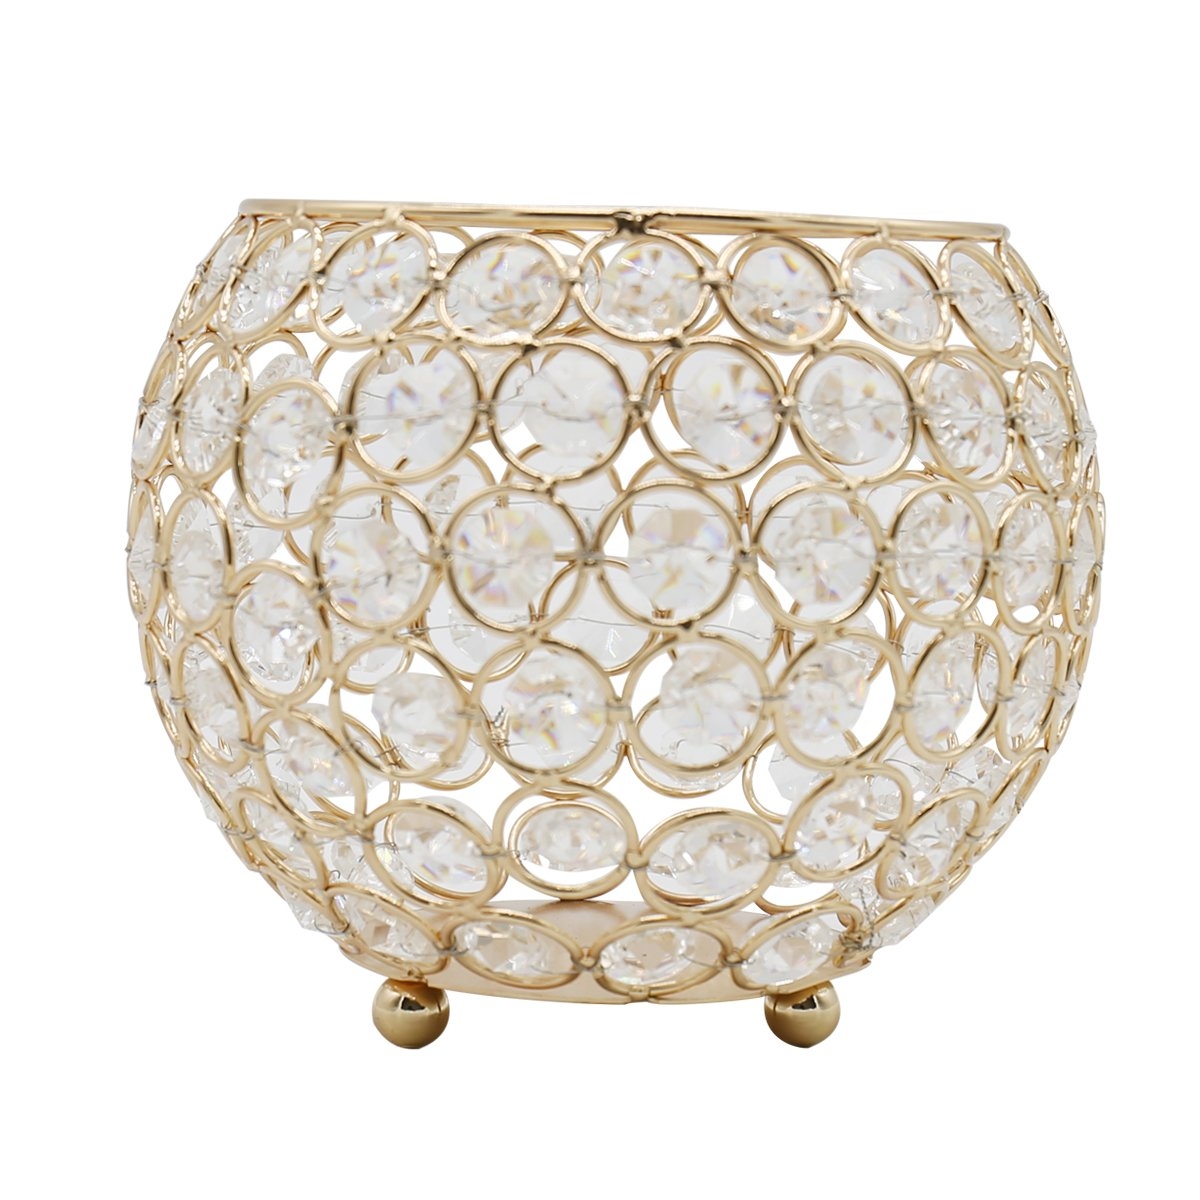 Joynest Crystal Tea Light Candle Lantern Holders, Wedding Coffee Table Decorative Centerpieces for Home Décor Party Mothers Day Birthday House Gifts (6'', Gold) by Joynest